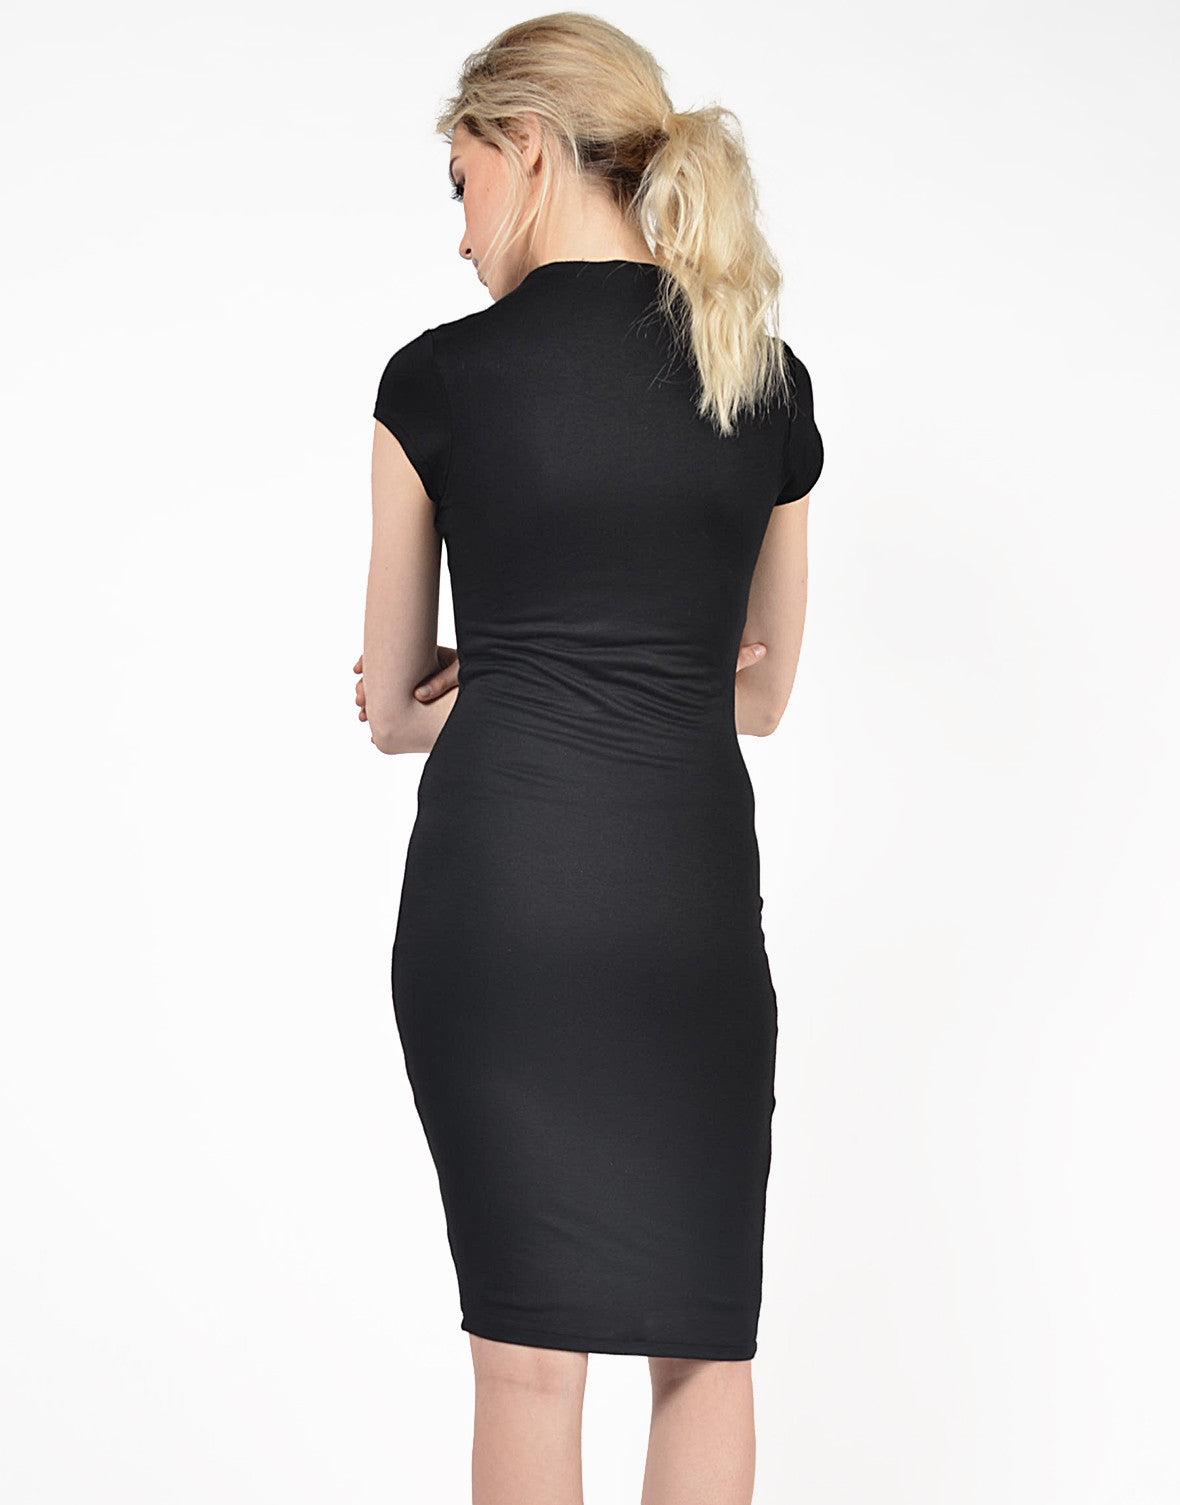 Back View of Classic Midi Dress